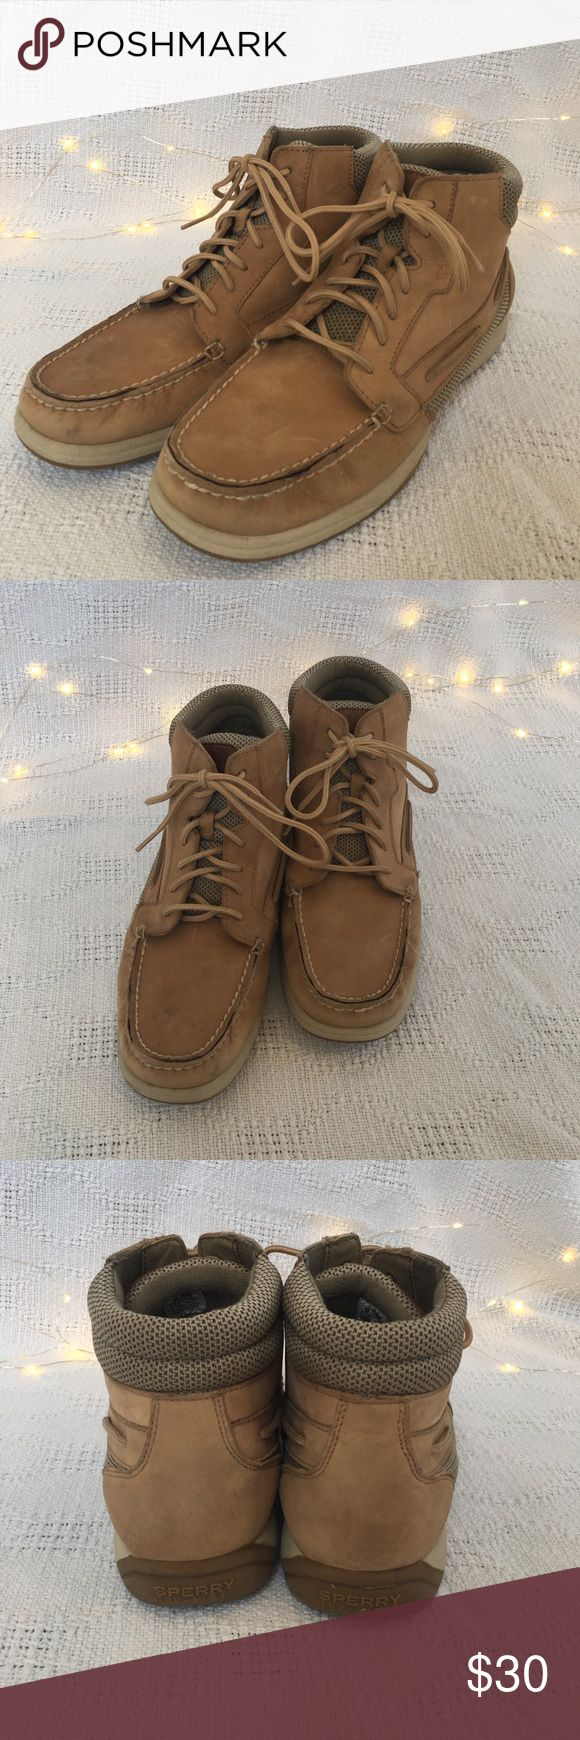 🆕Listing- Sperry high tops Lace up tan Sperry high tops! Very comfortable and stylish! Worn in but still in a great condition! Offers are an option:) Sperry Shoes